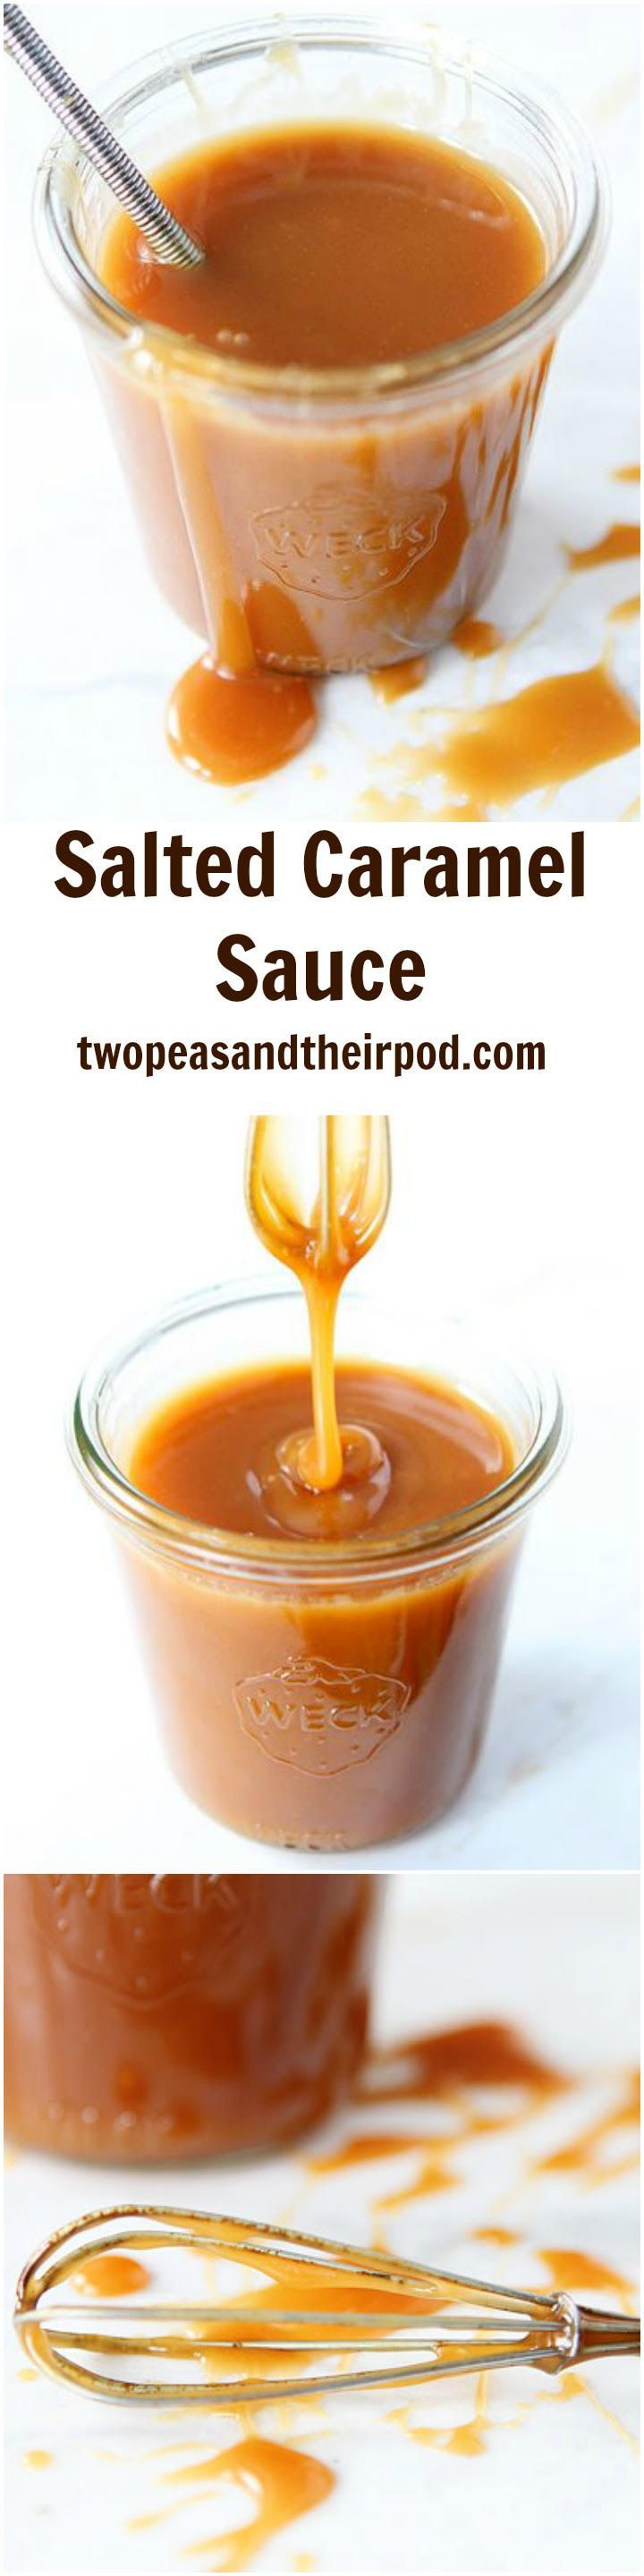 Salted Caramel Sauce Recipe on http://twopeasandtheirpod.com The BEST homemade Salted Caramel sauce and it's SO easy to make at home! Everyone LOVES this recipe and it is good on just about everything!